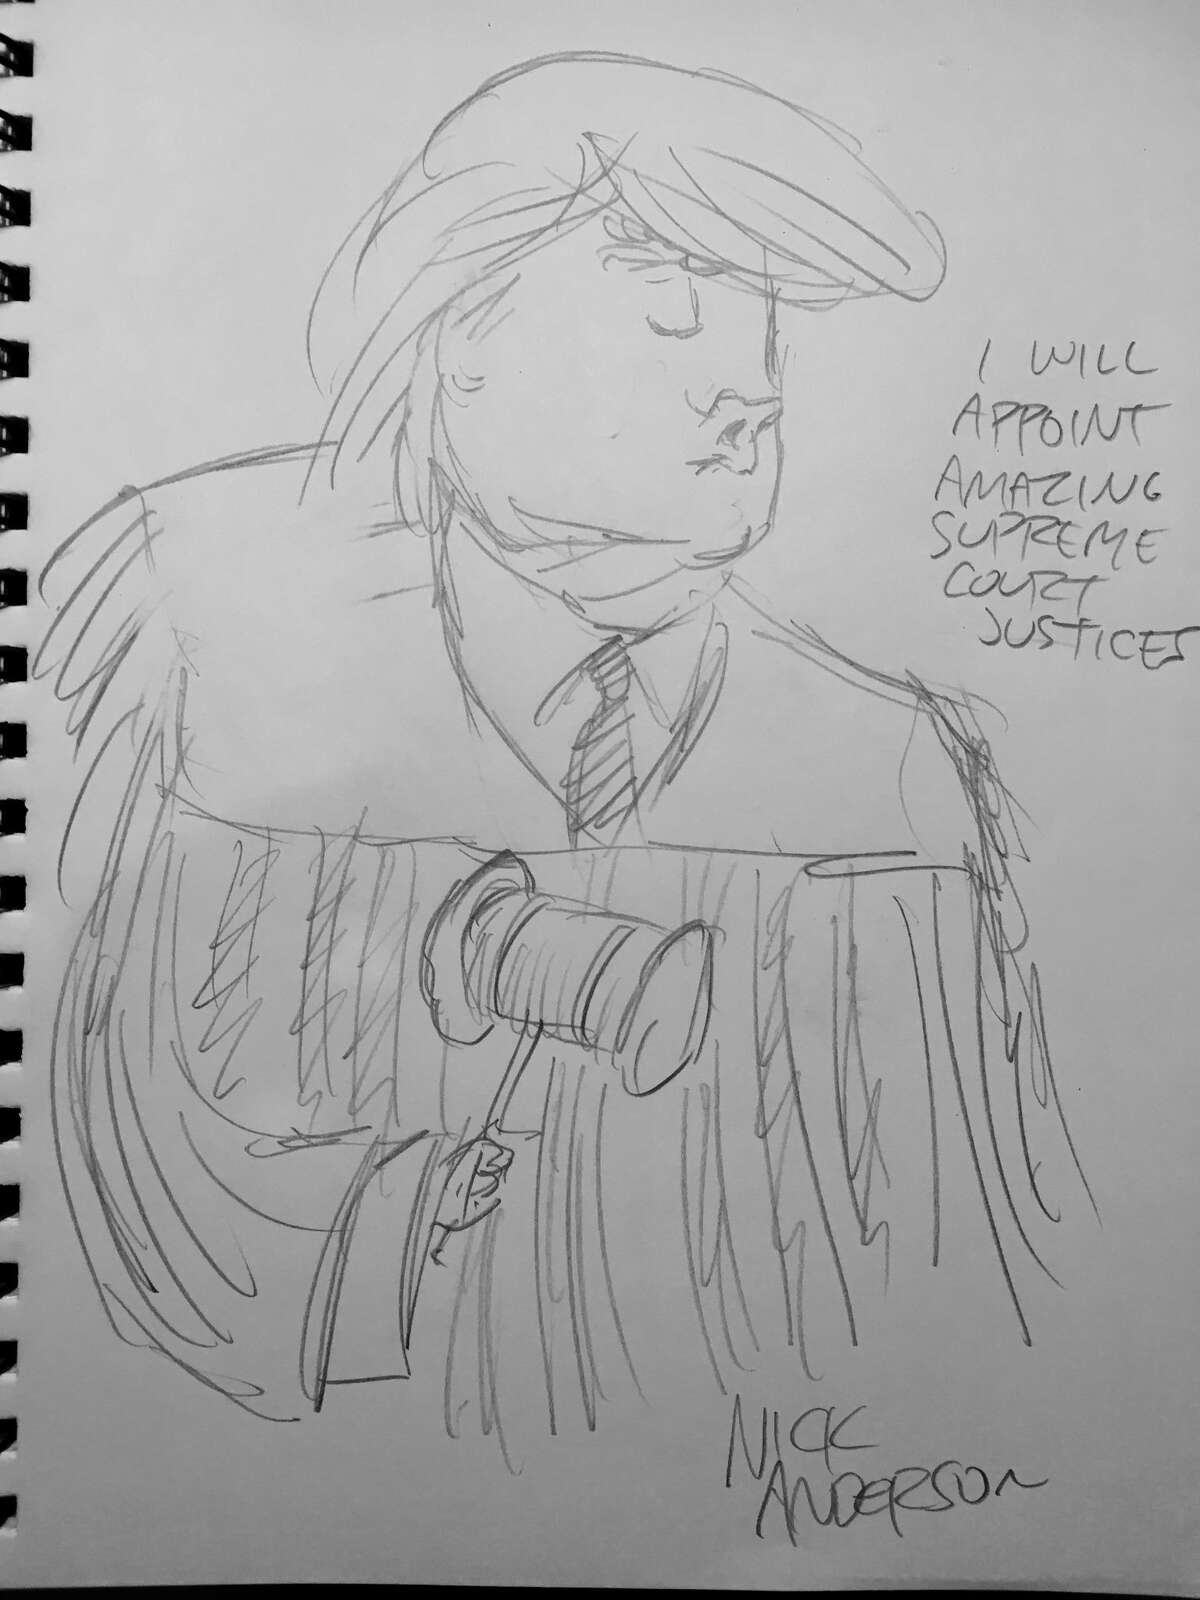 """""""I will appoint amazing Supreme Court justices."""" Houston Chronicle editorial cartoon writer Nick Anderson """"live sketches"""" the final presidential debate."""